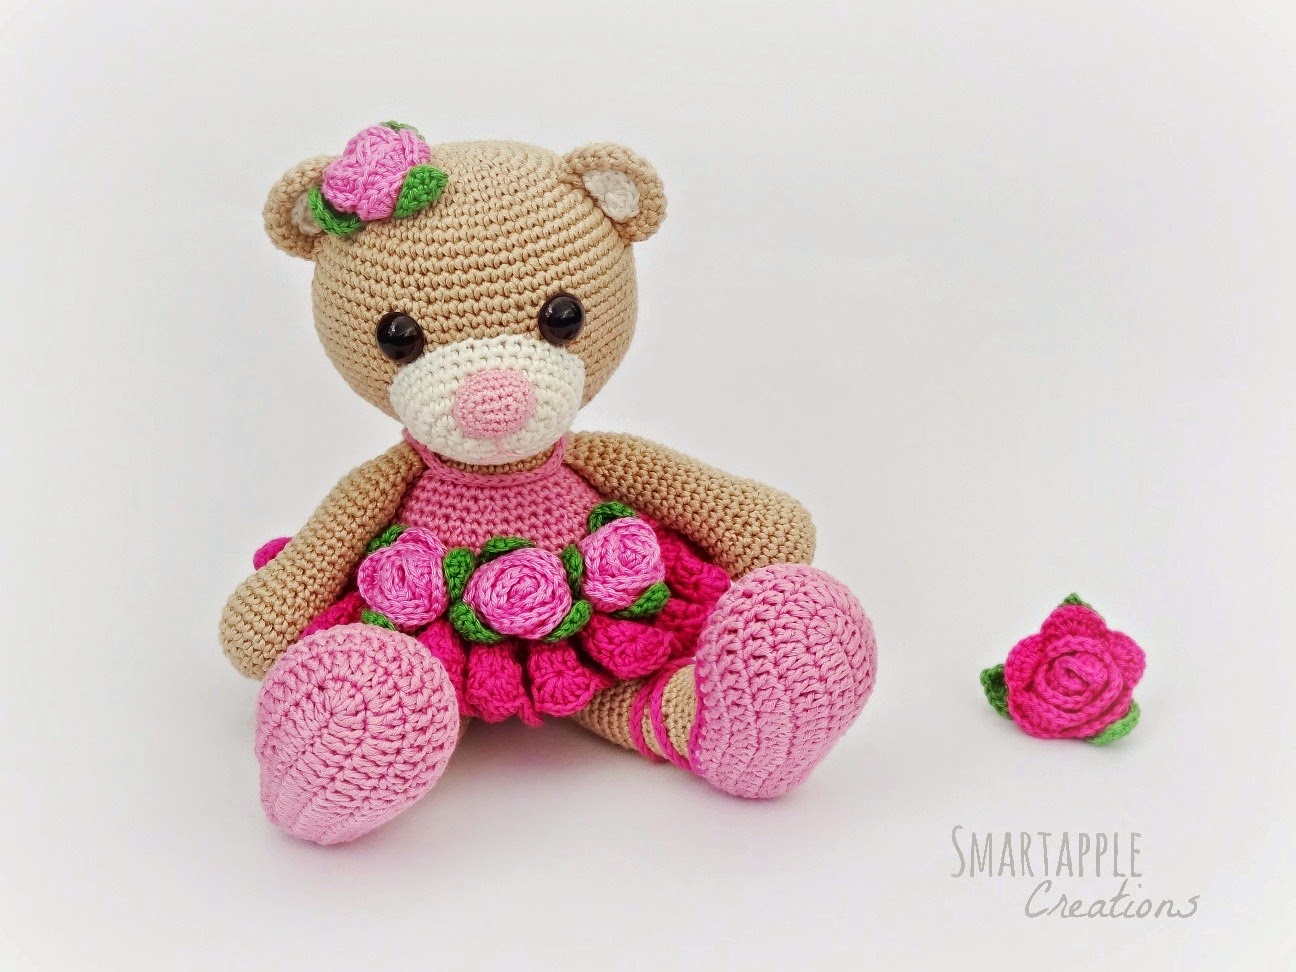 Amigurumi Free Patterns Bear : Smartapple creations amigurumi and crochet: bibi the ballerina